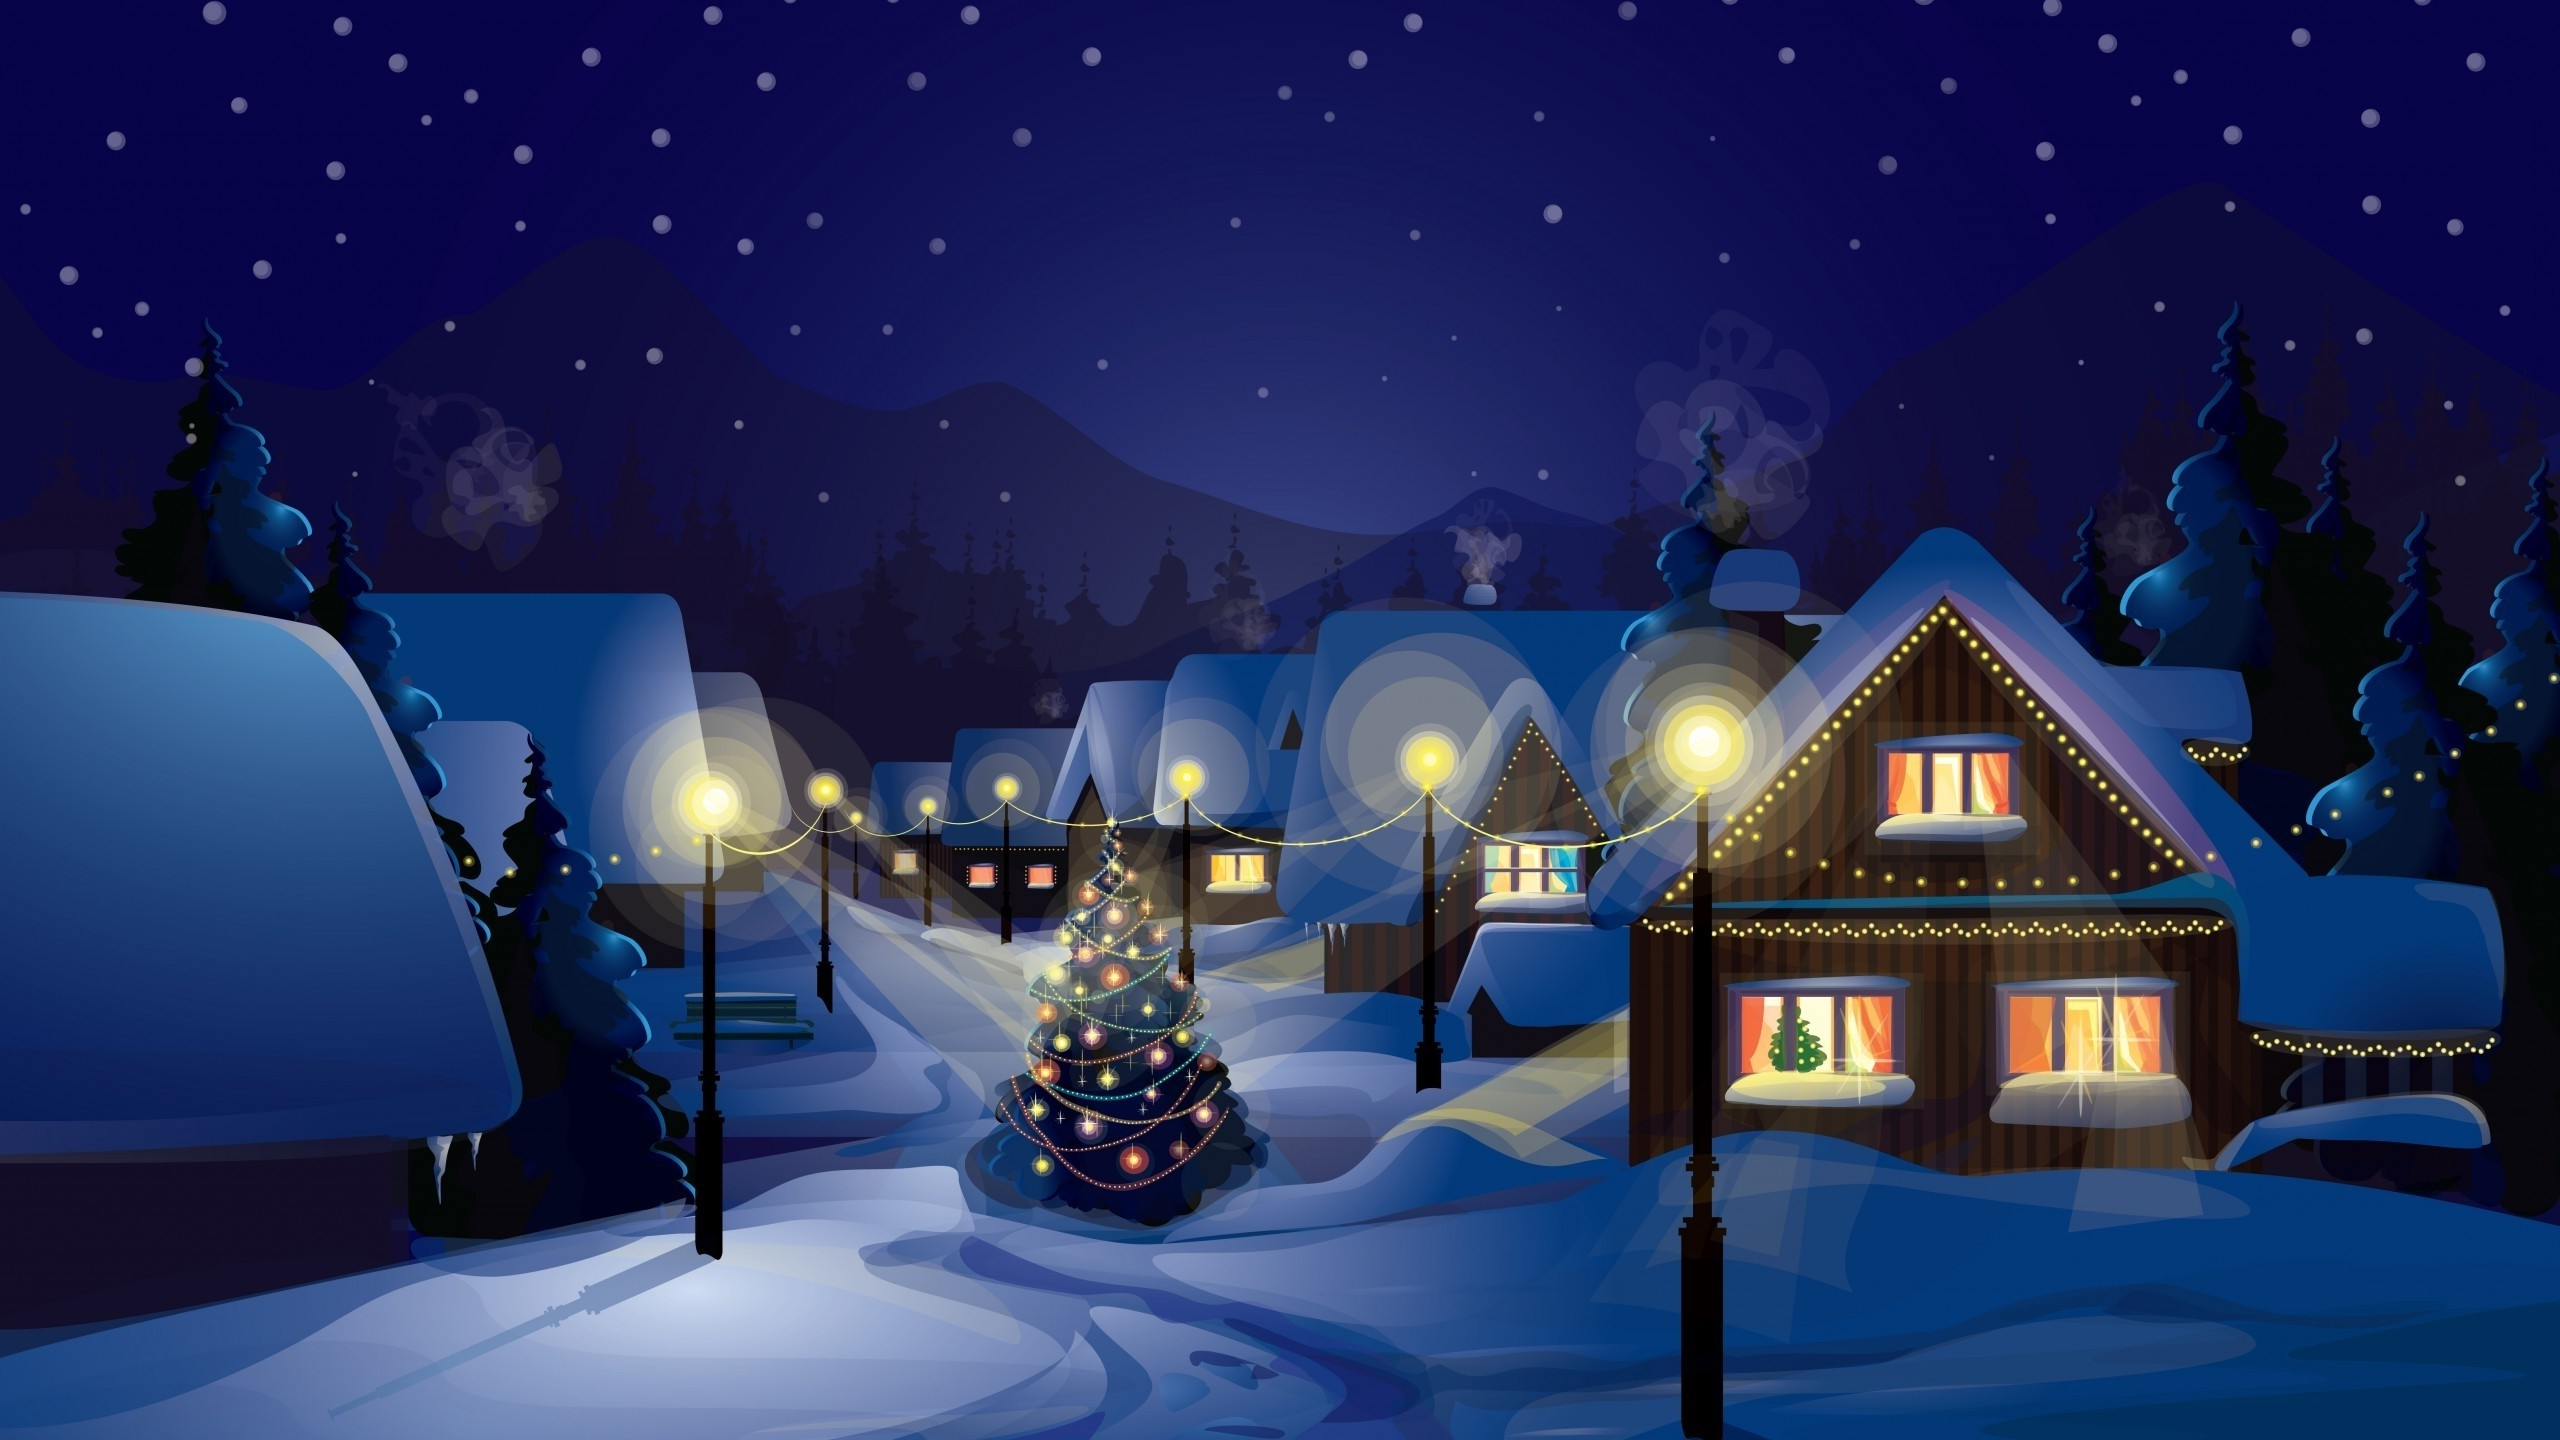 Christmas, Village, Christmas Tree, Snow Wallpapers HD / Desktop